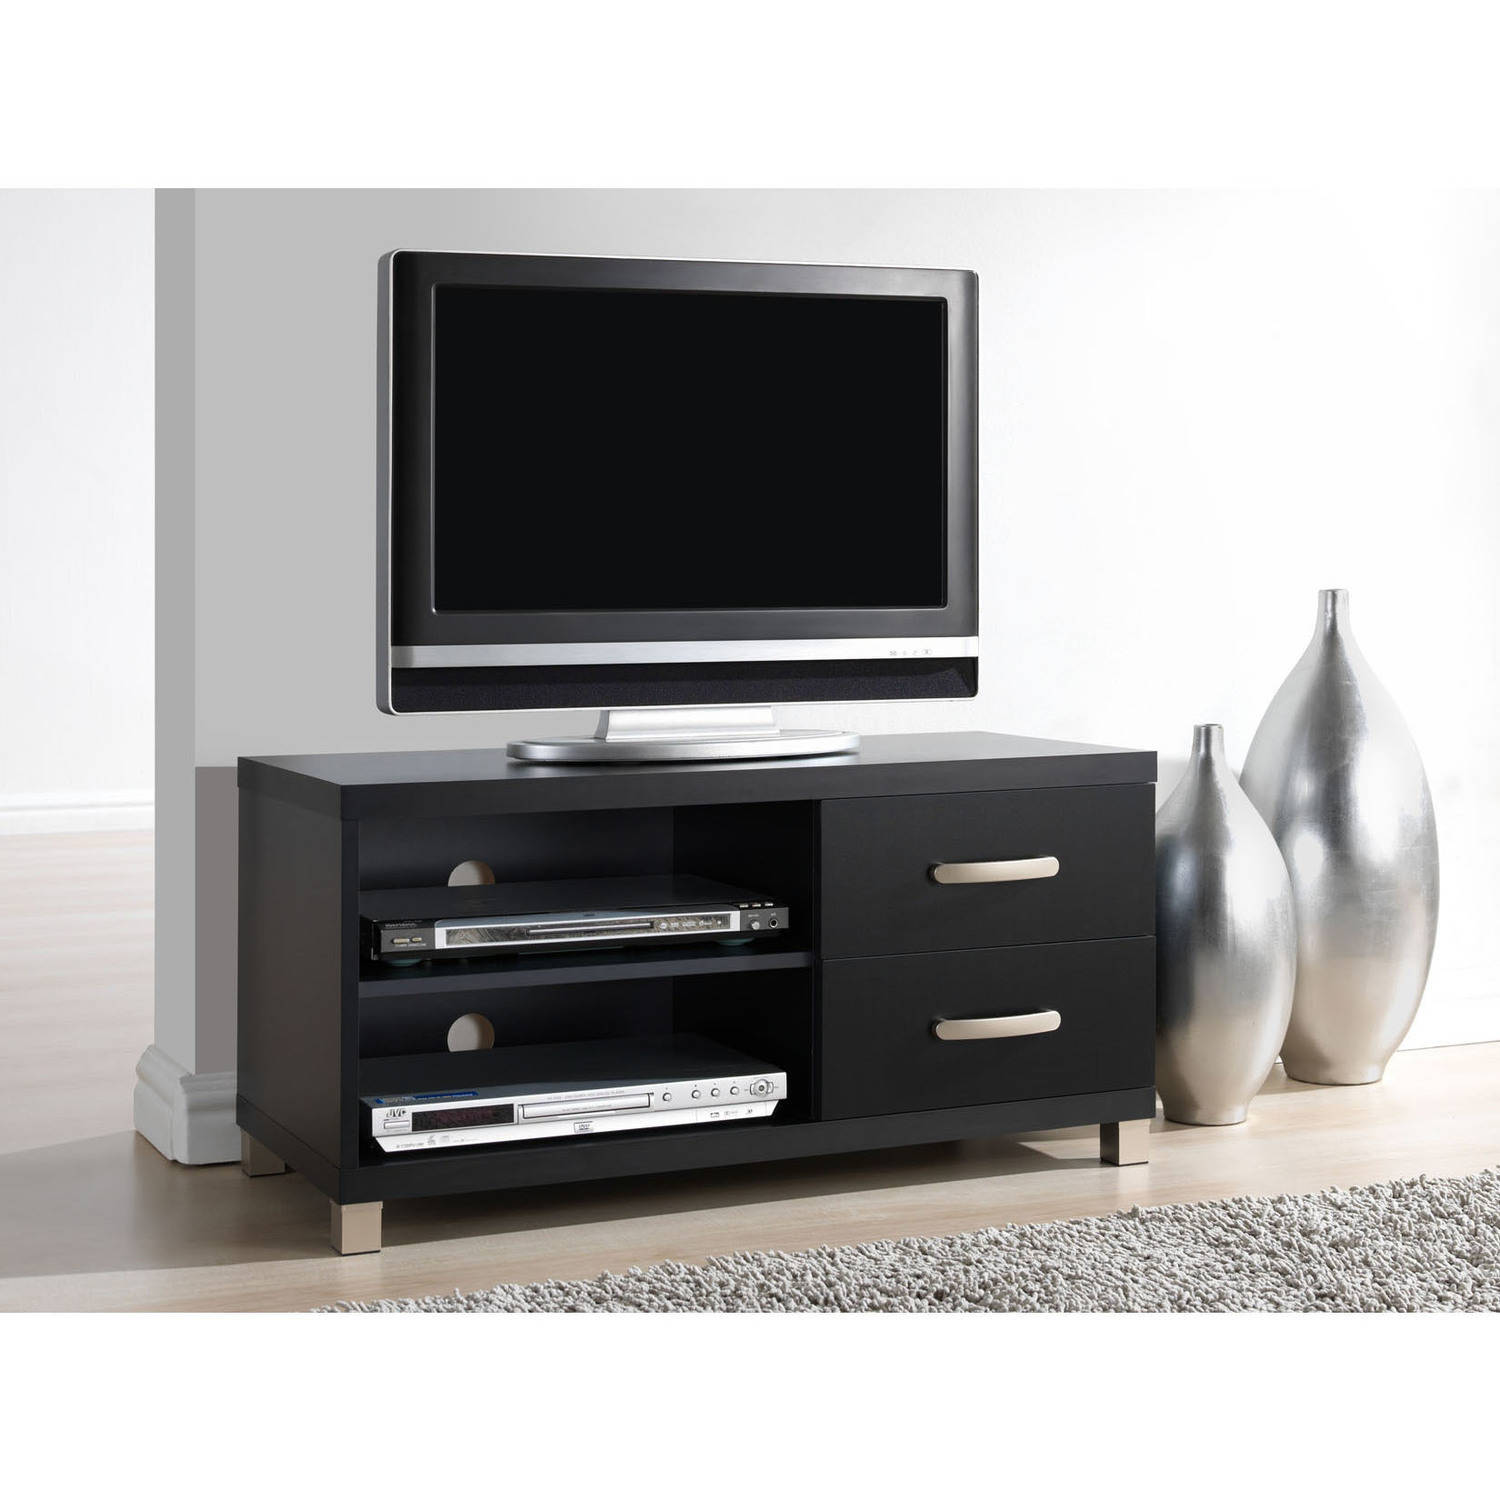 """Techni Mobili Modern TV Stand with Storage for TVs Up To 40"""", Black (RTA-8896-BK)"""